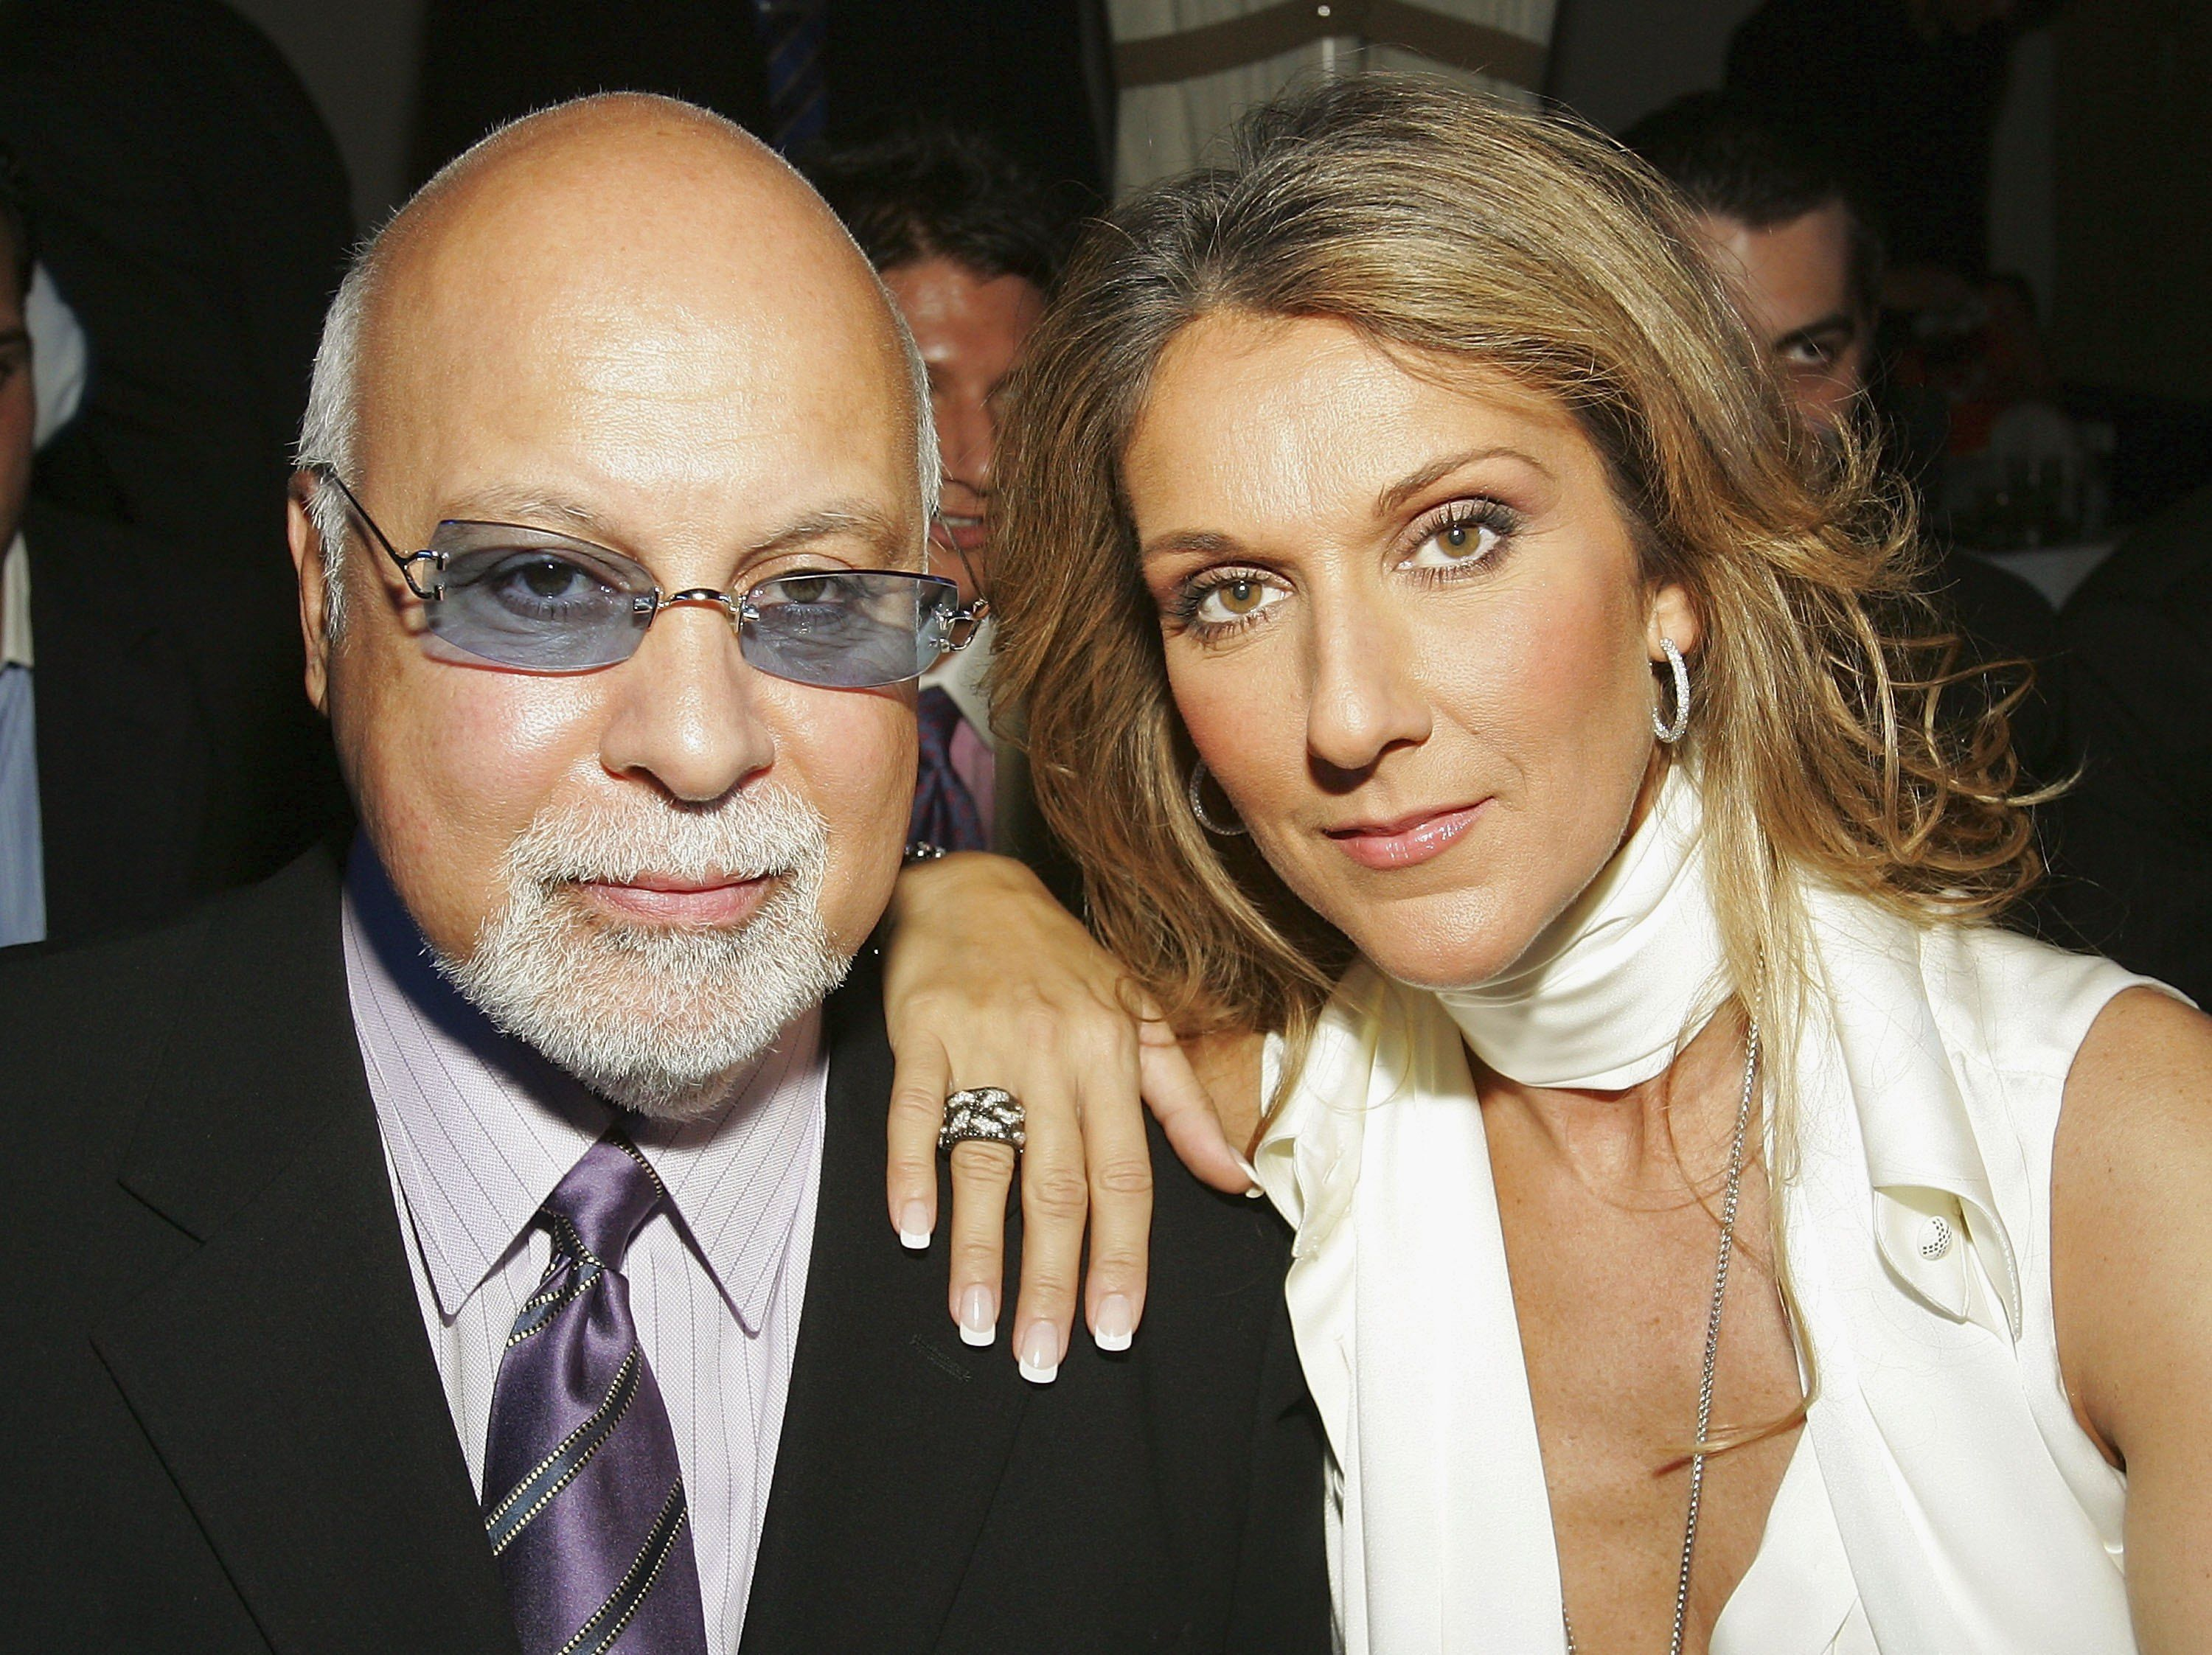 Celine Dion and Rene Angelil pose before a fashion show by jewelry designer Chris Aire at the Pure Nightclub at Caesars Palace June 4, 2006 in Las Vegas, Nevada.   Source: Getty Images